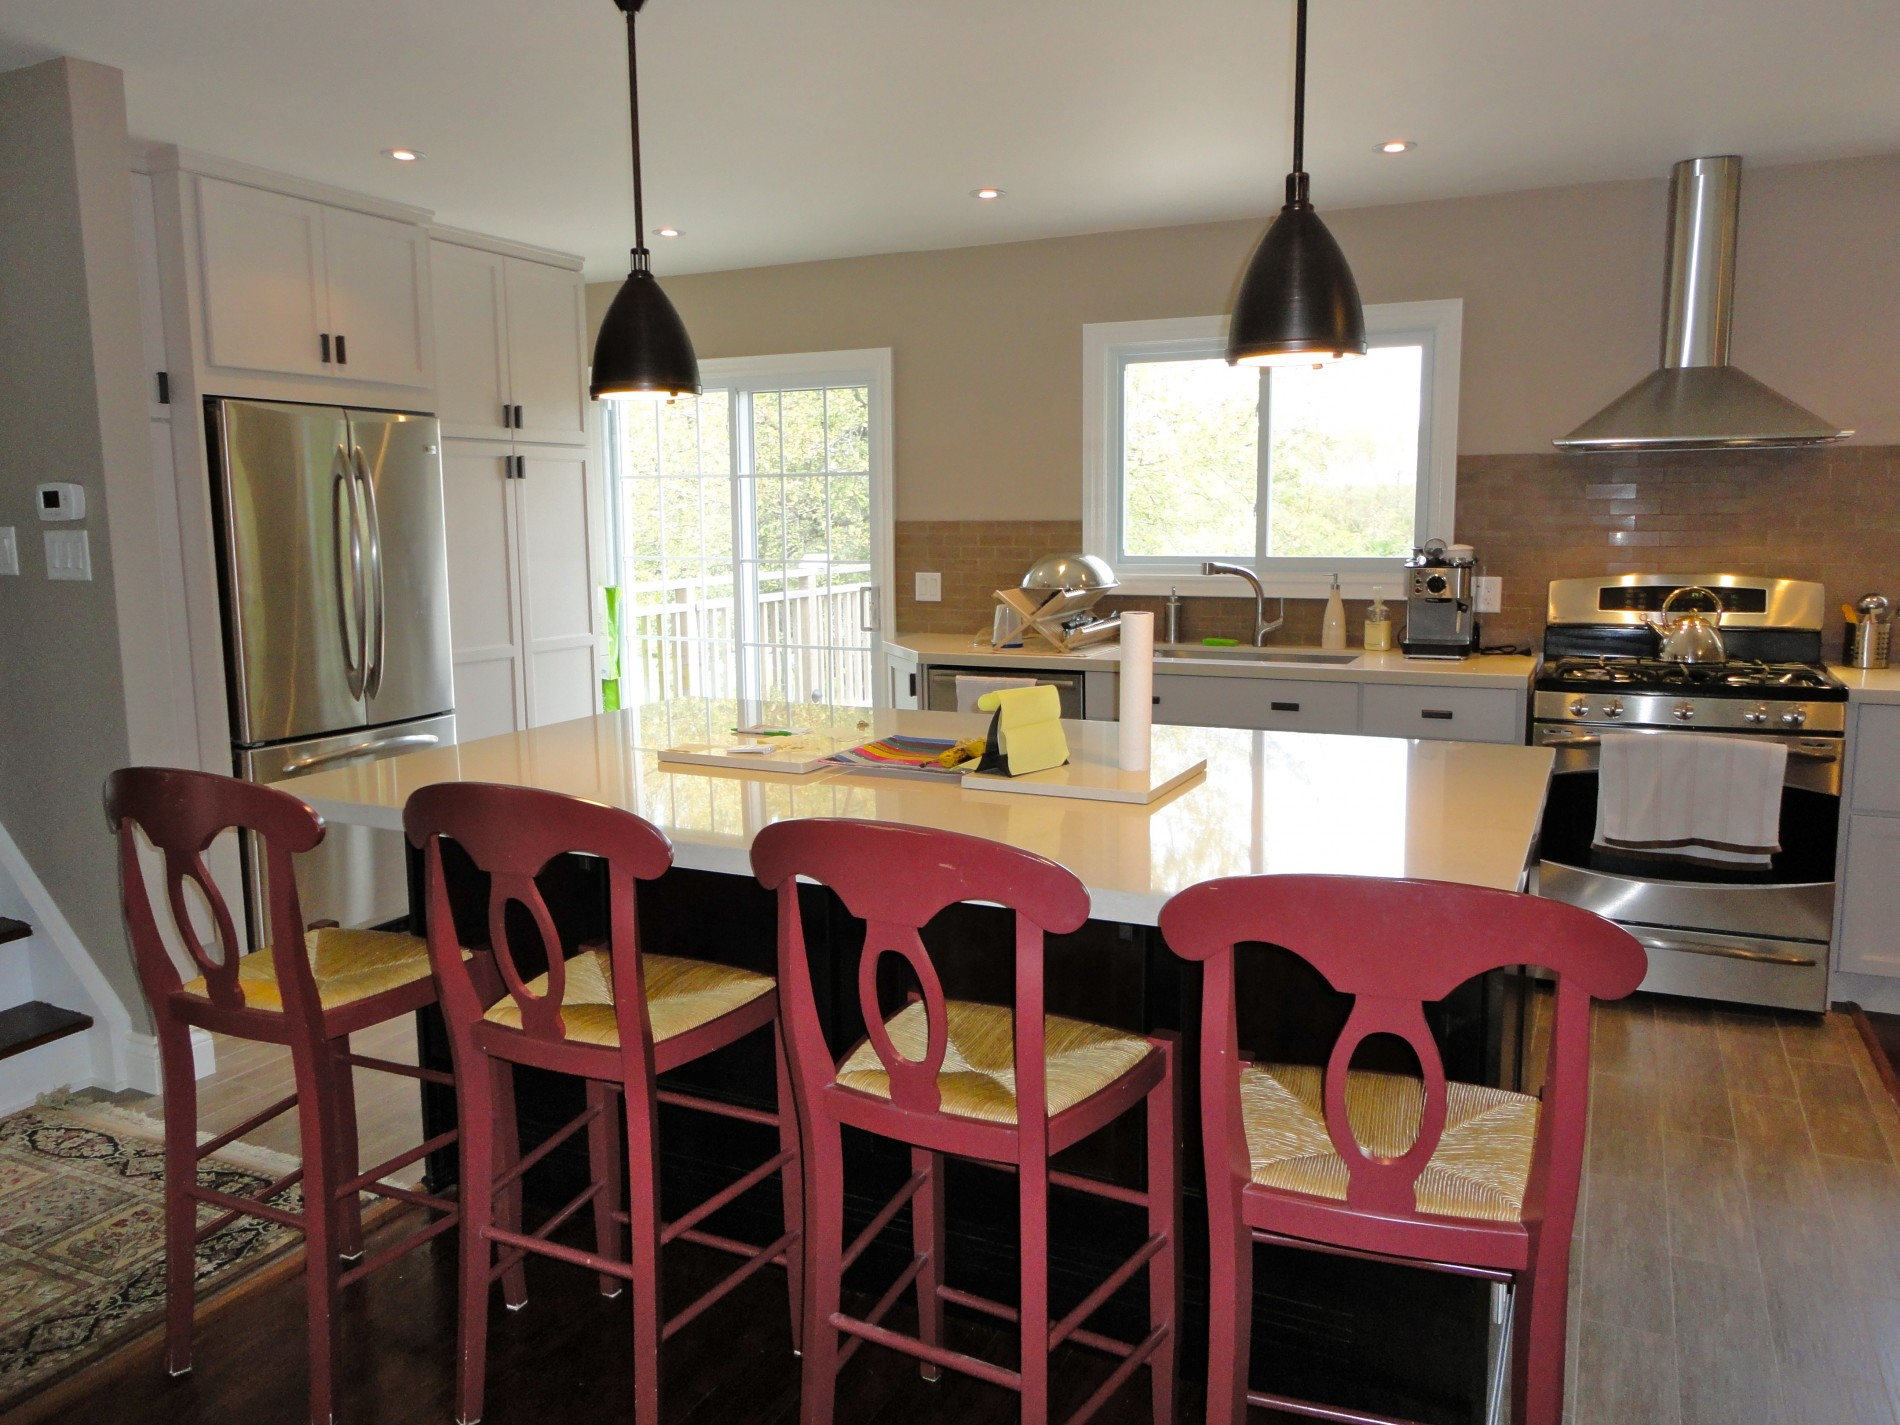 King City Arts & Crafts Kitchen - Featured Image